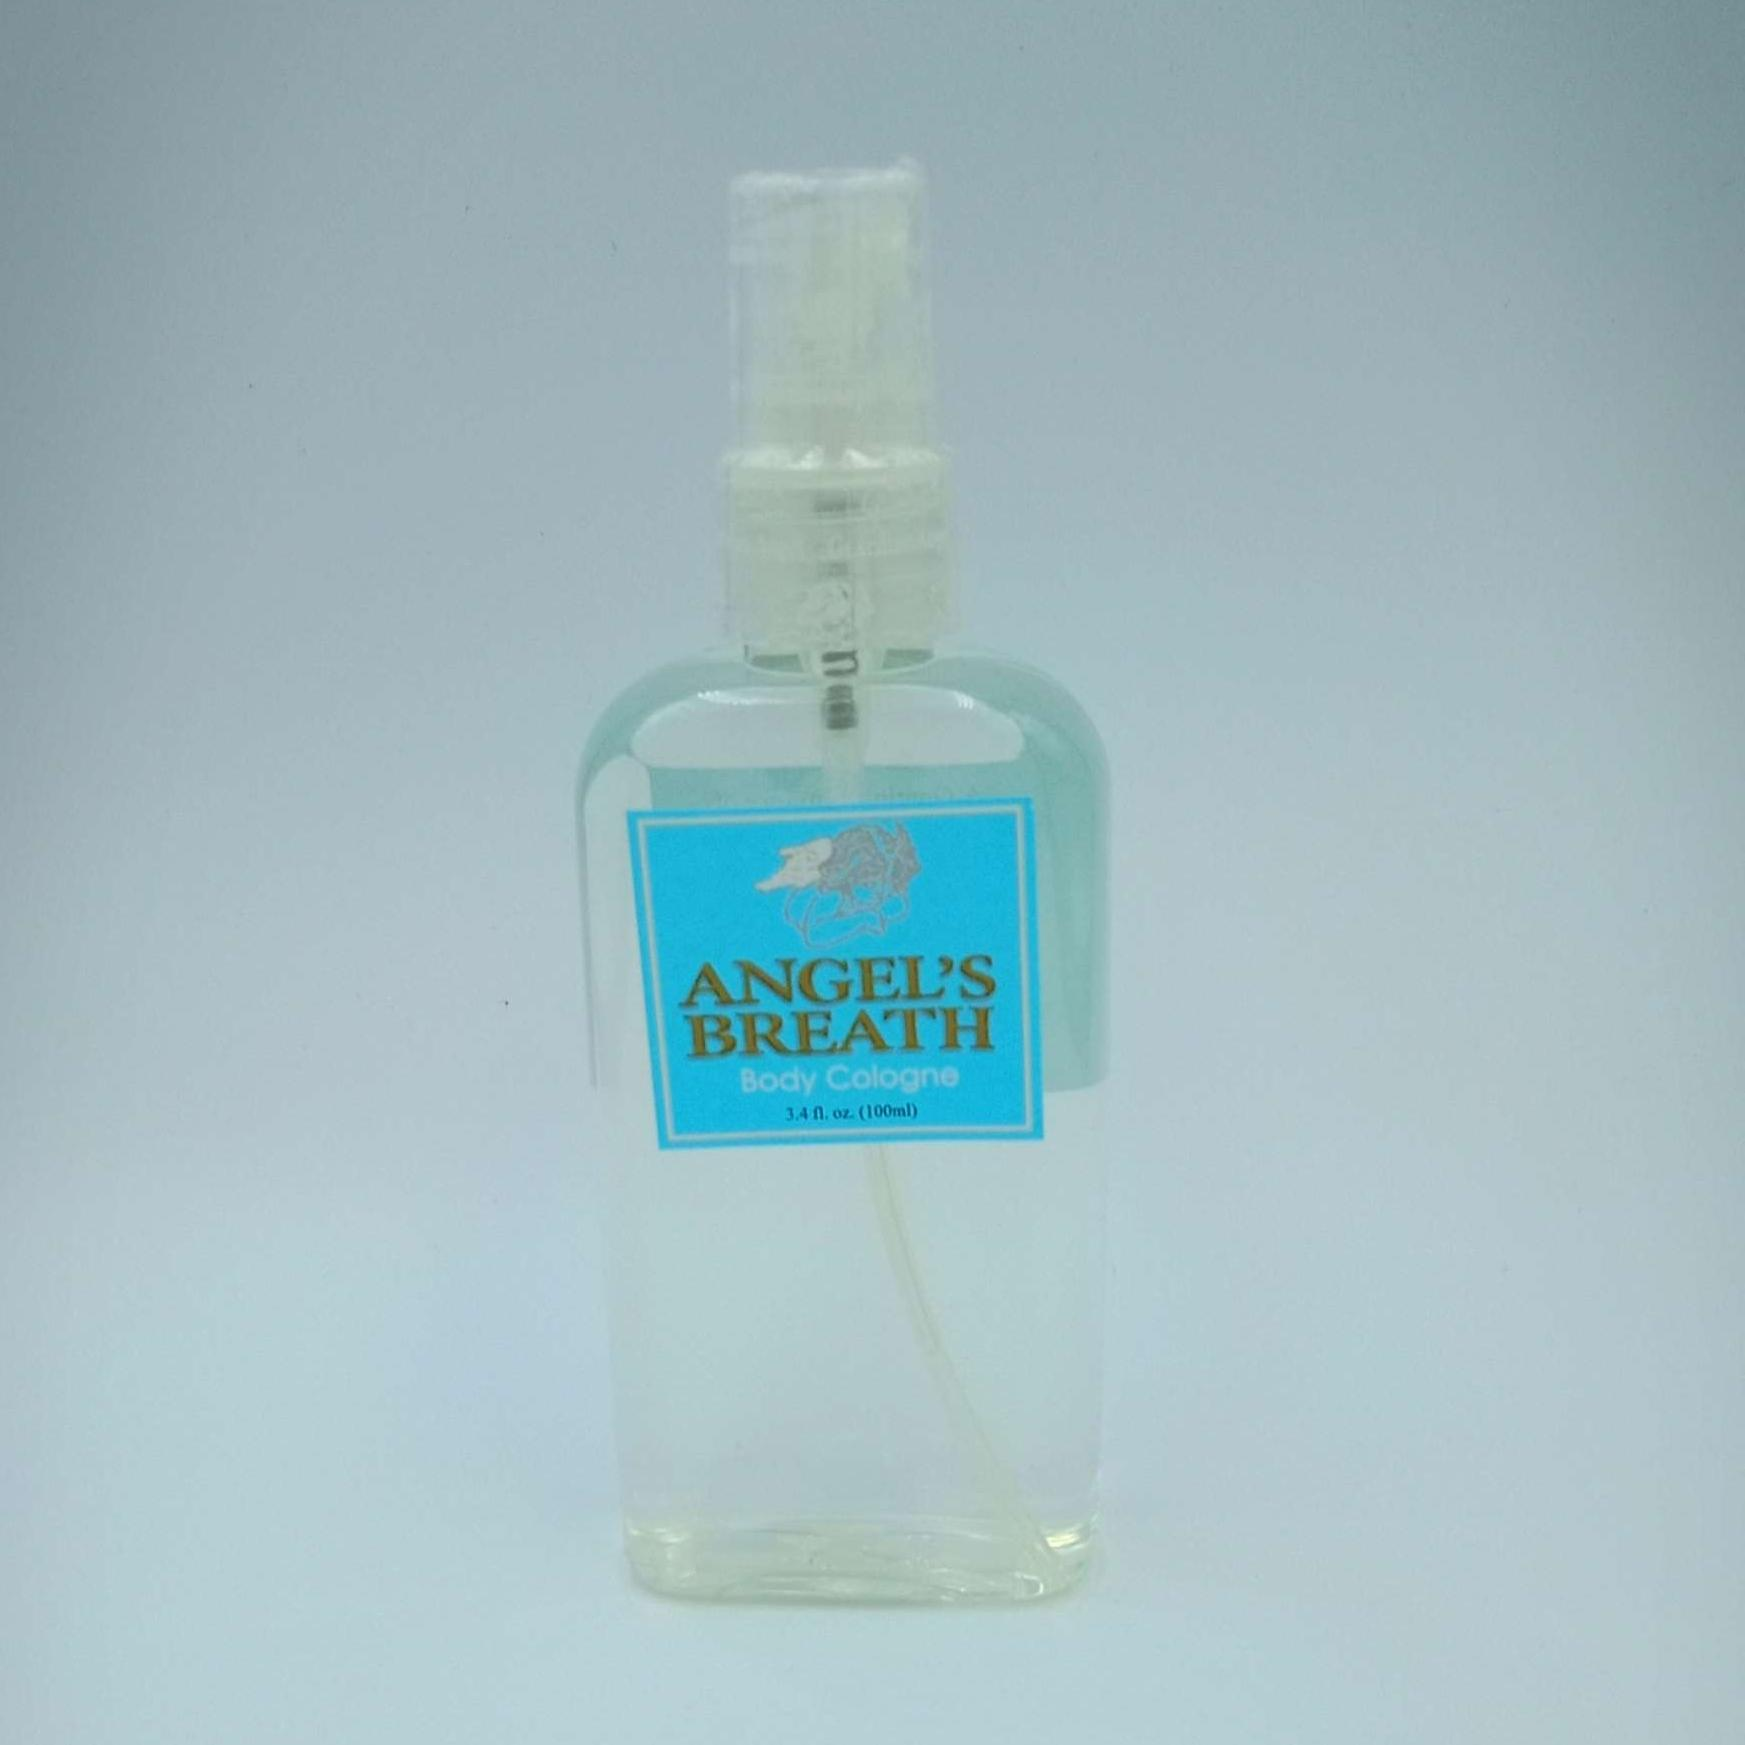 Anjj Angel's Breath  Body Cologne  Classic 100ml ( Unisex - Kids & Adults)  in New Label